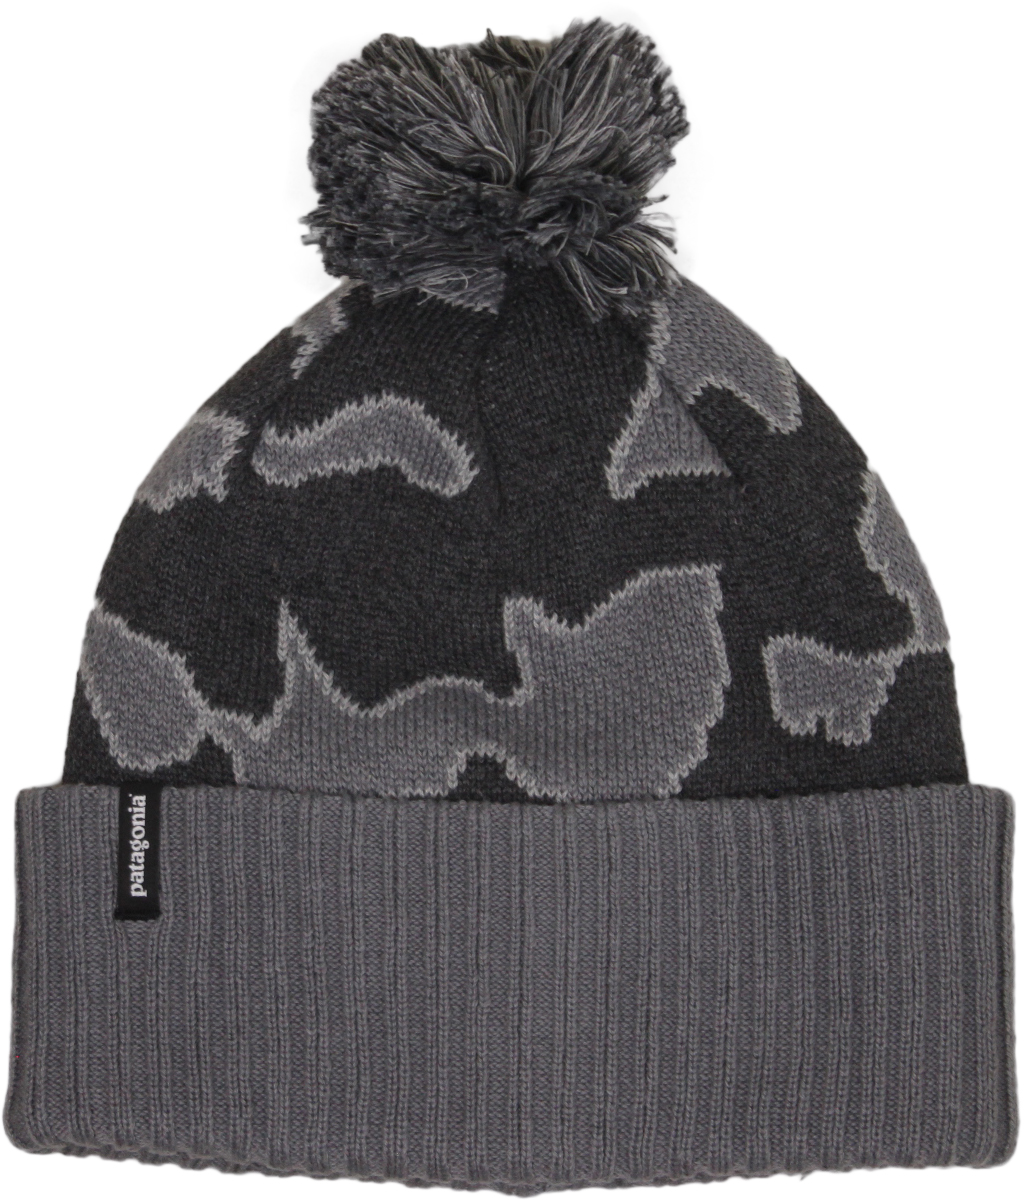 Men s Powder Town - Aerial Camo Hat  Feather GreyMens - Flying Point ... 8dea2f8e24d5